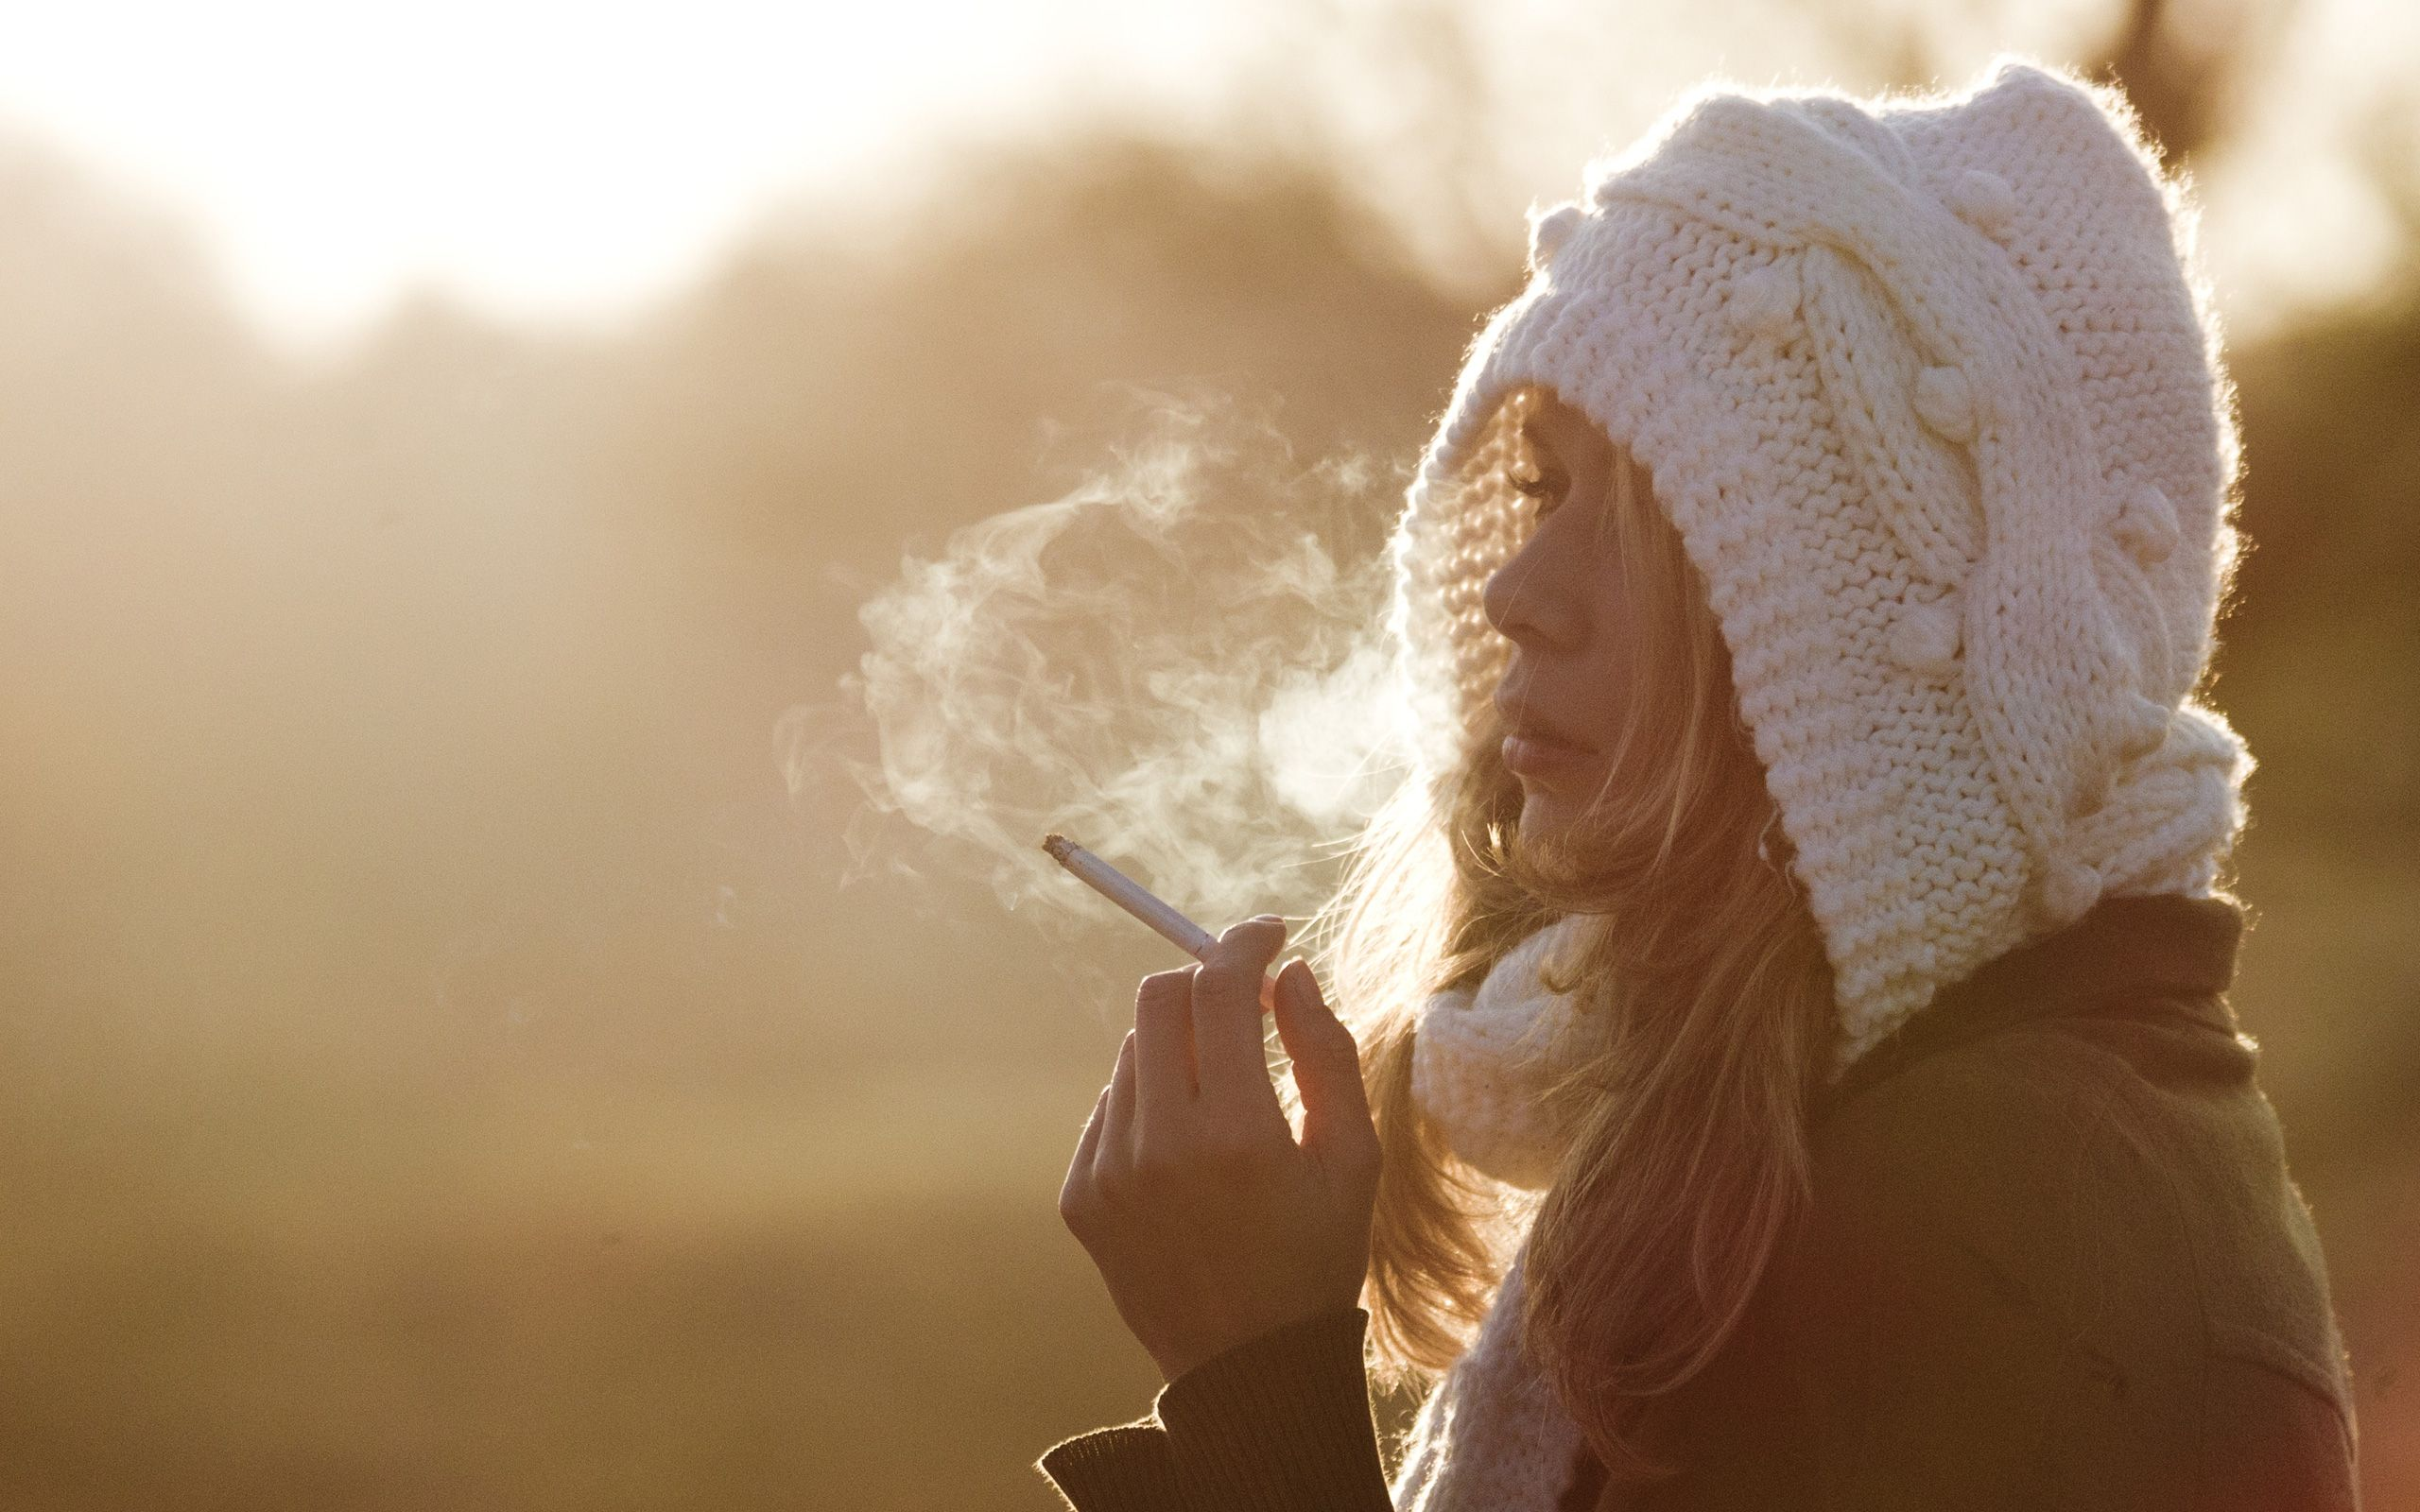 Cigaret With Girl Wallpaper Download Beanie Smoking Cigarette Blonde Mood Wallpaper 2560x1600